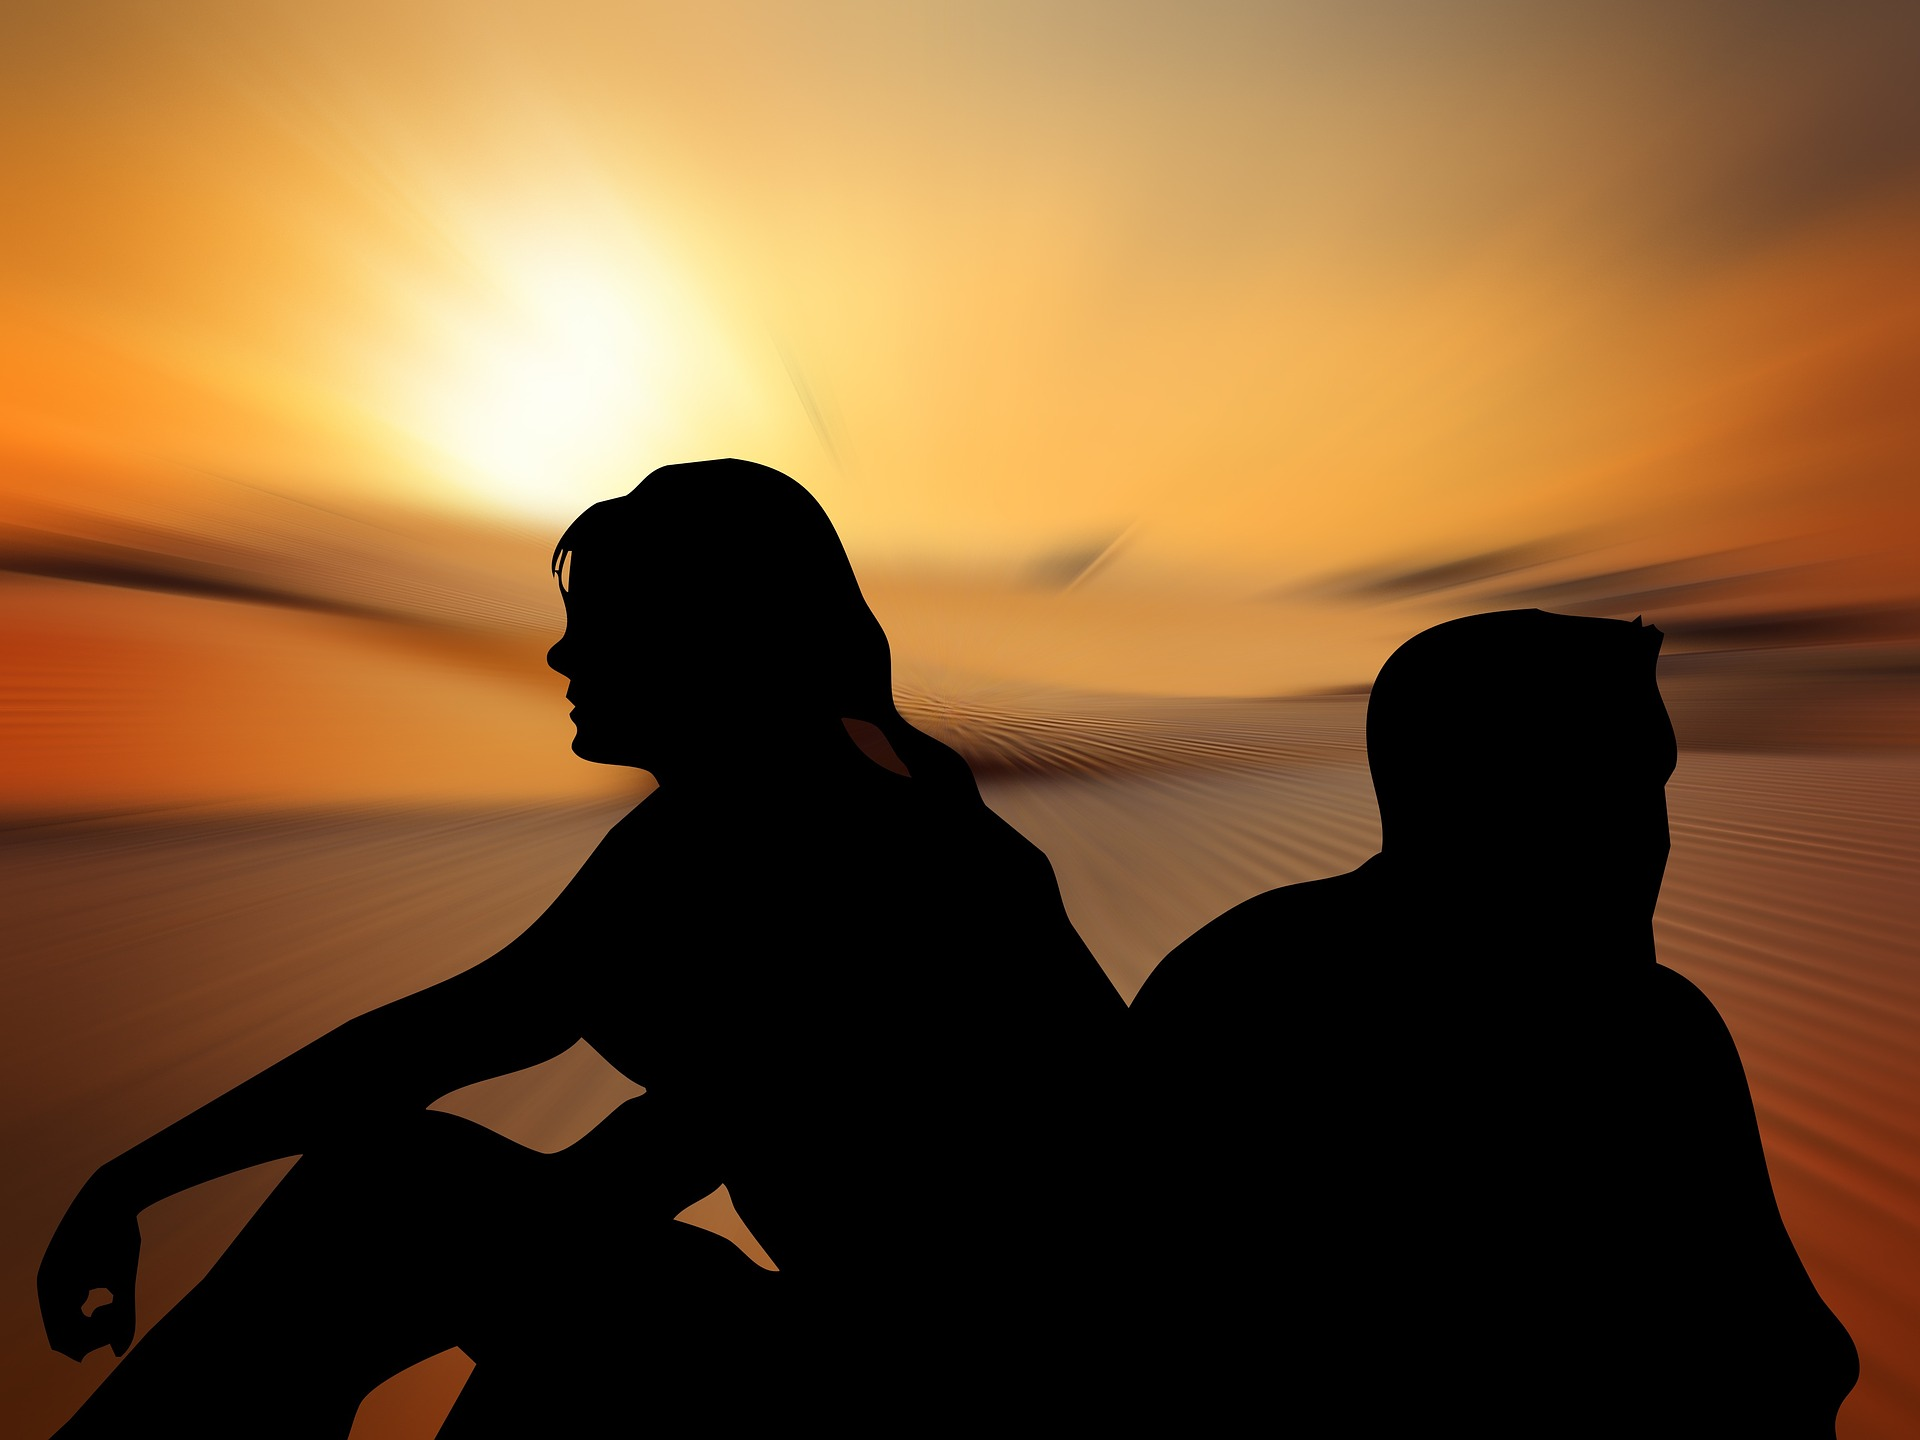 silhouettes-812125_1920